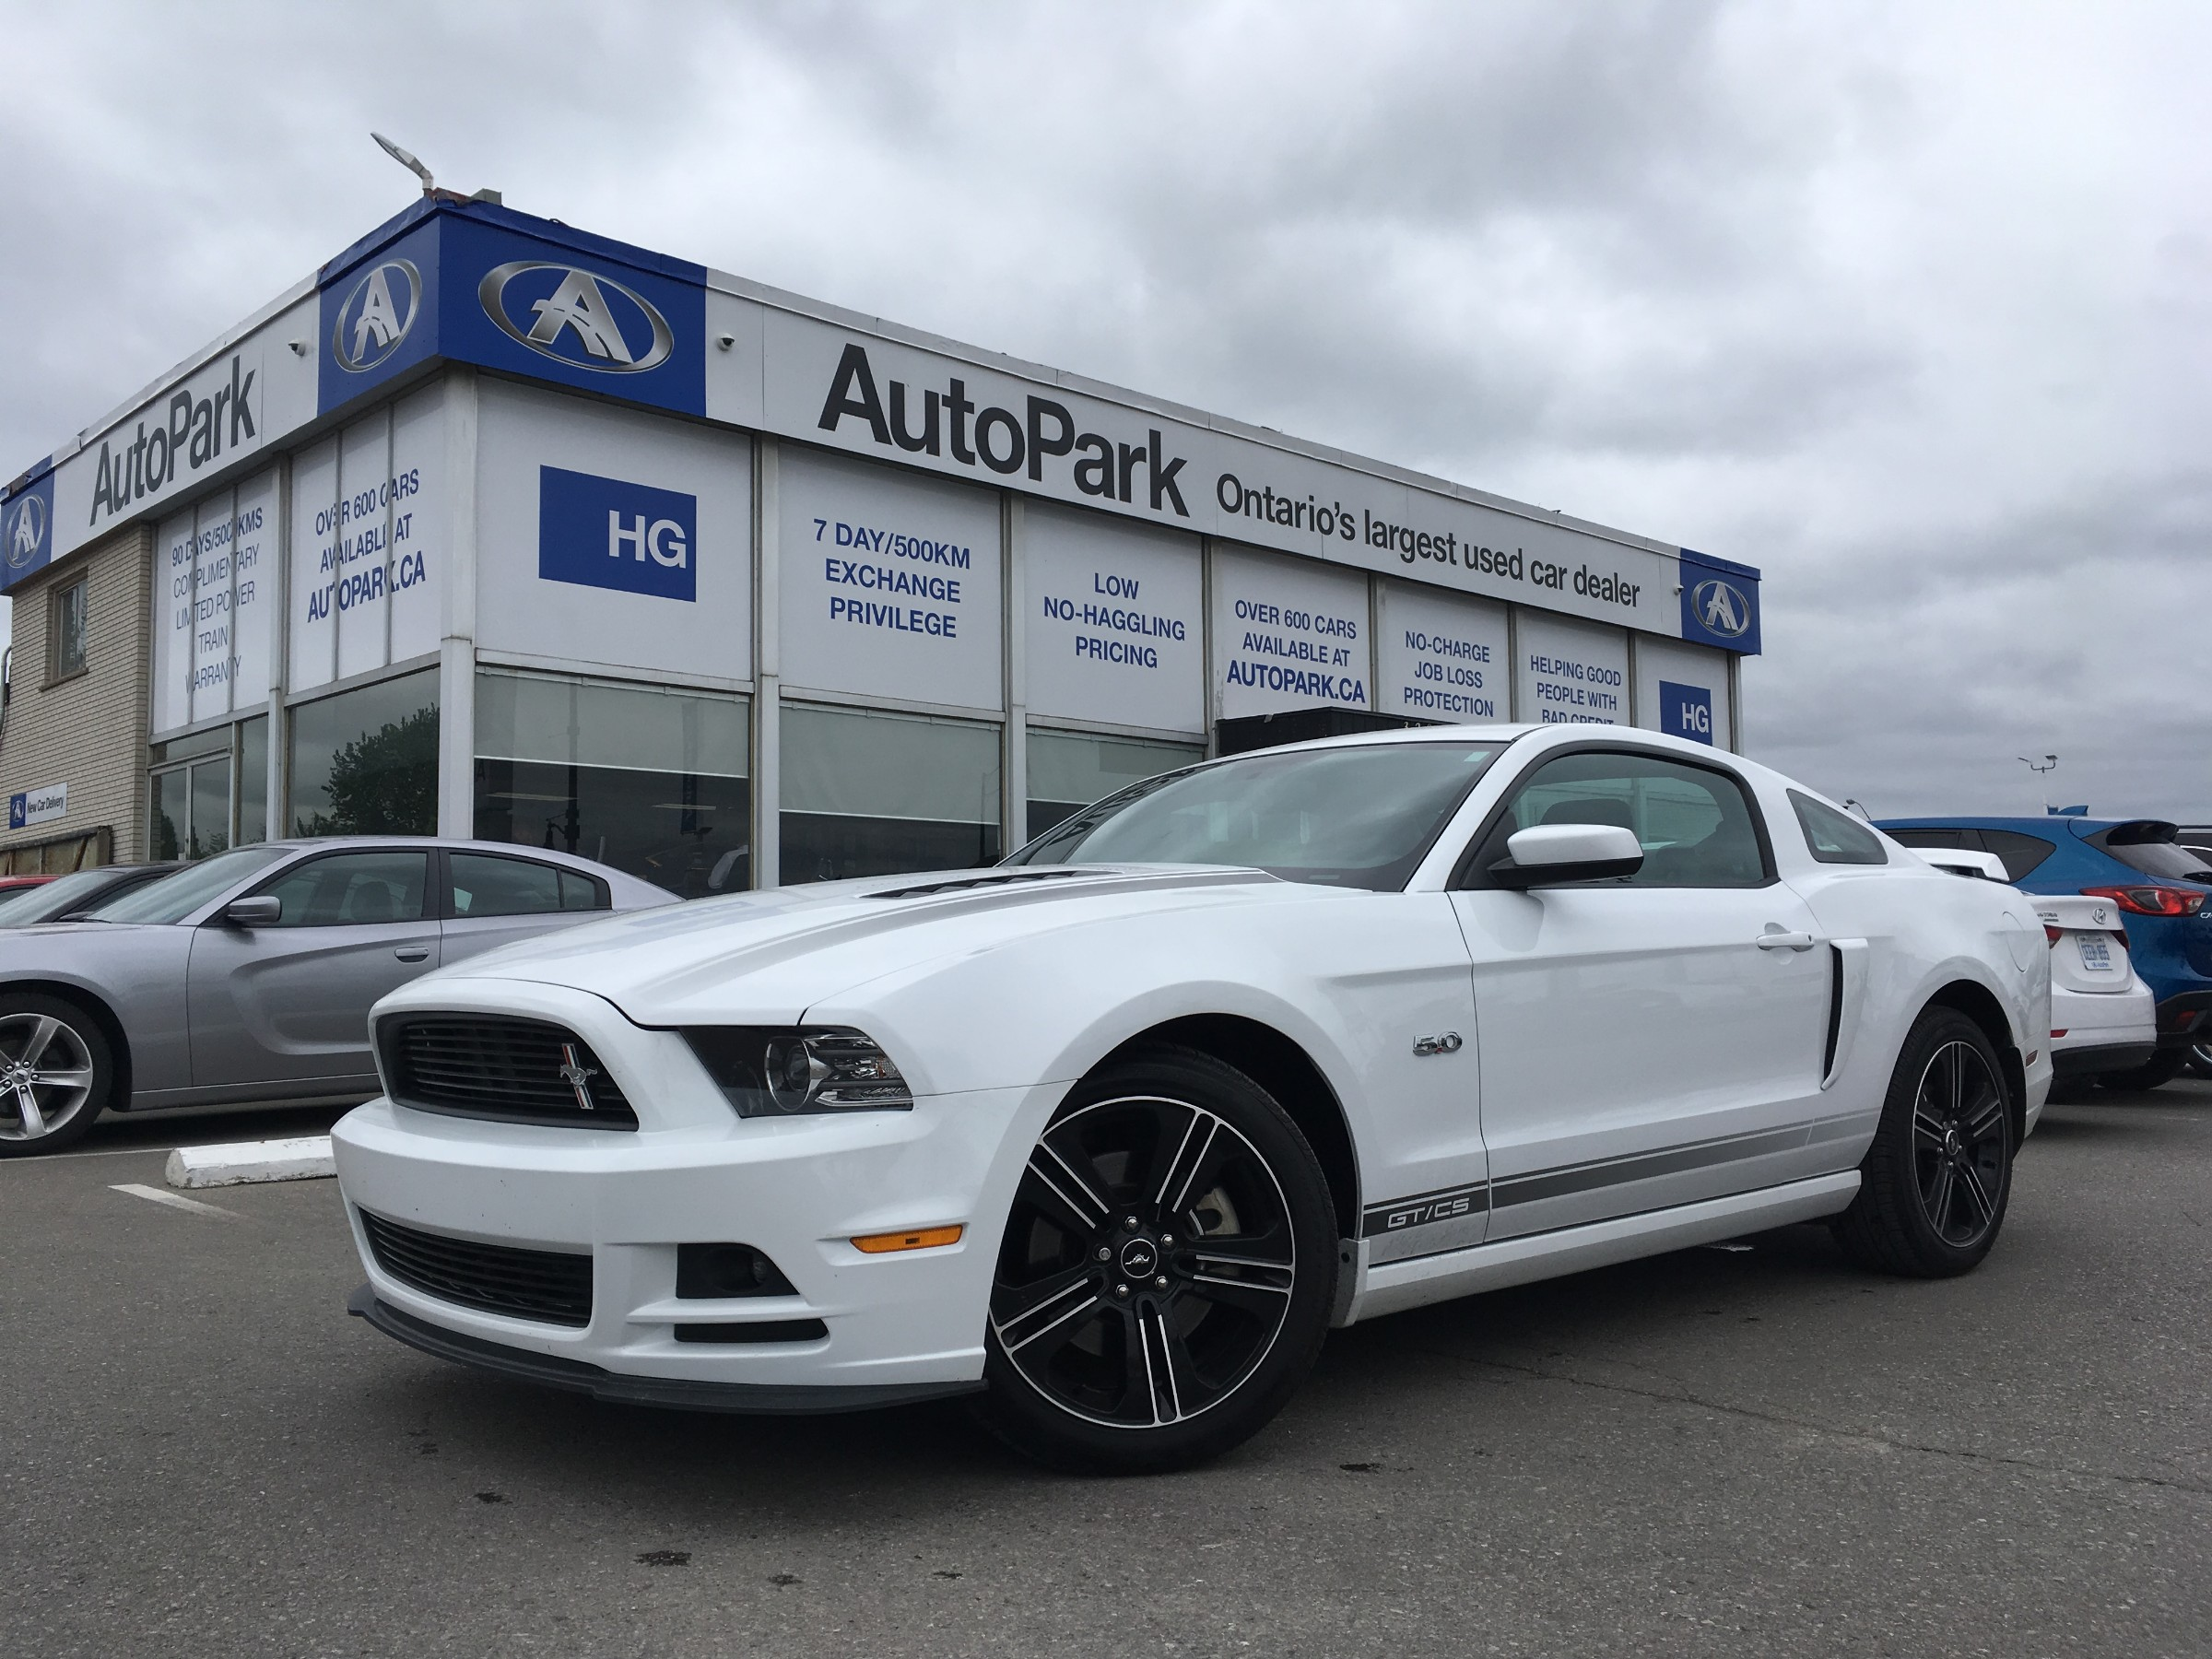 Used 2013 Ford Mustang For Sale in Toronto, ON - CarGurus